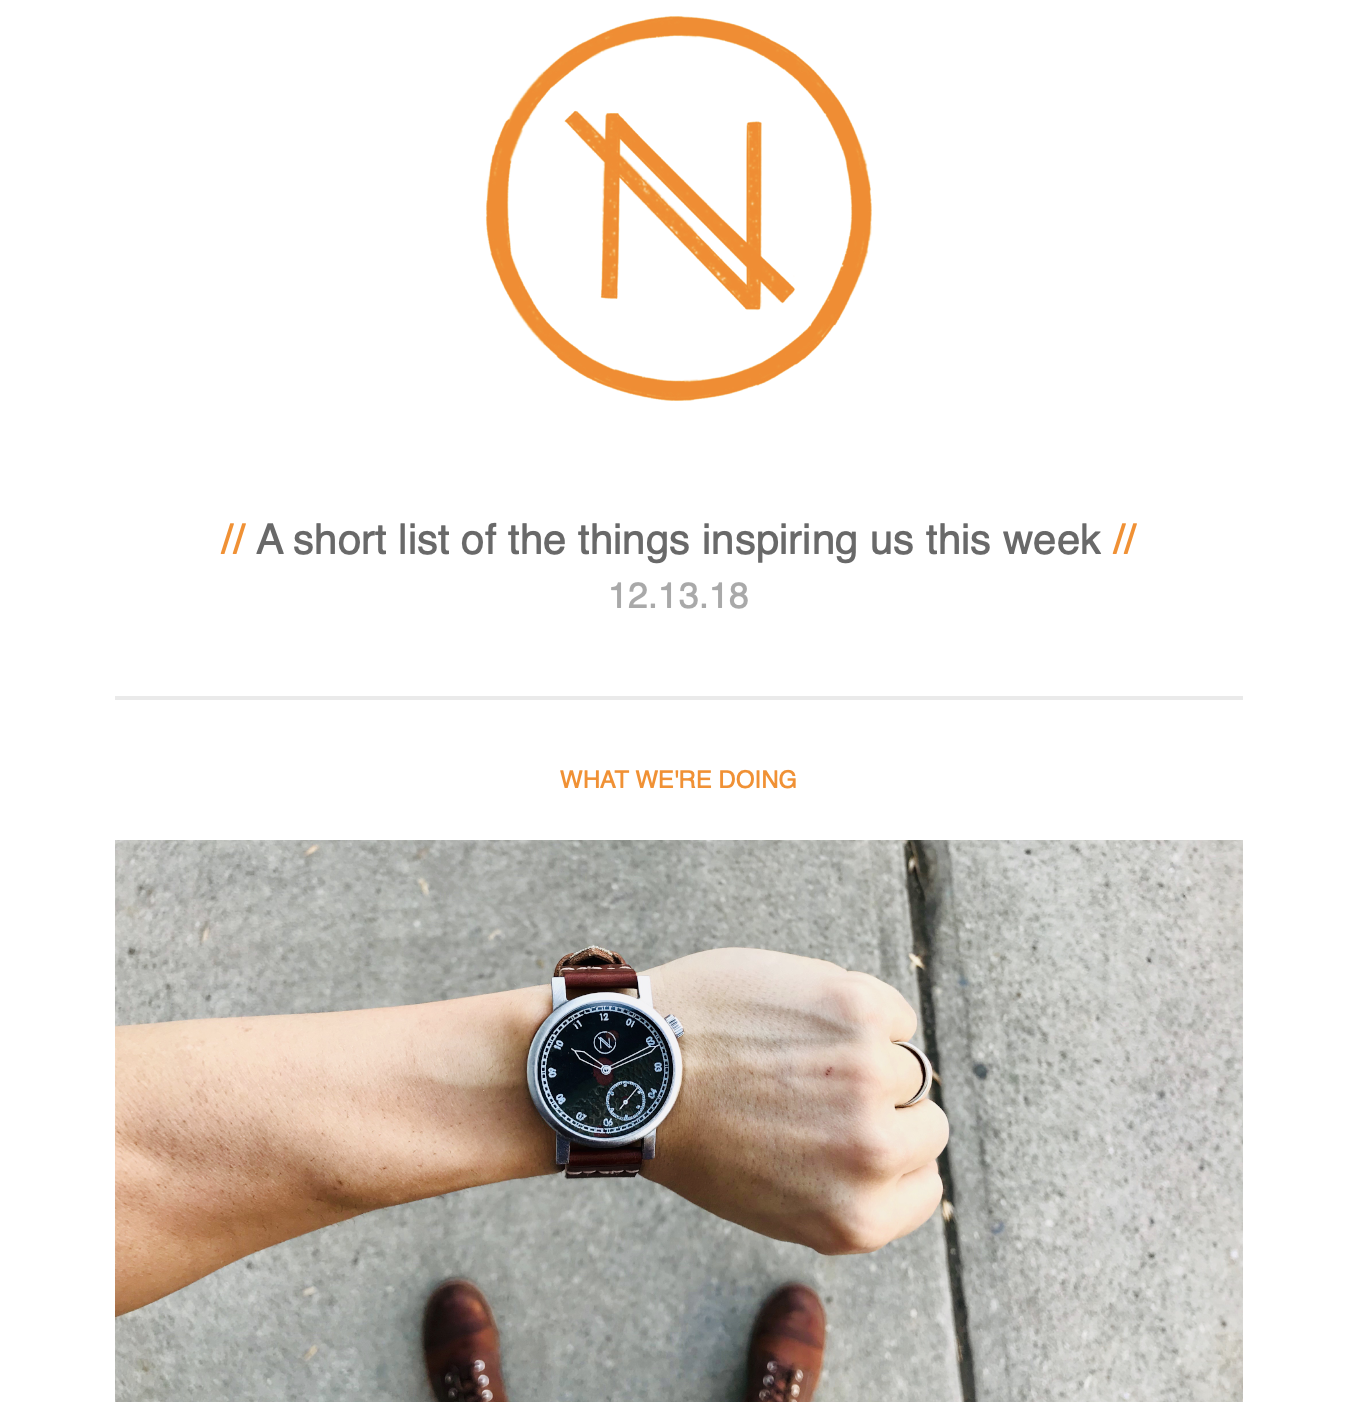 building-watches-from-scratch-and-starting-a-business